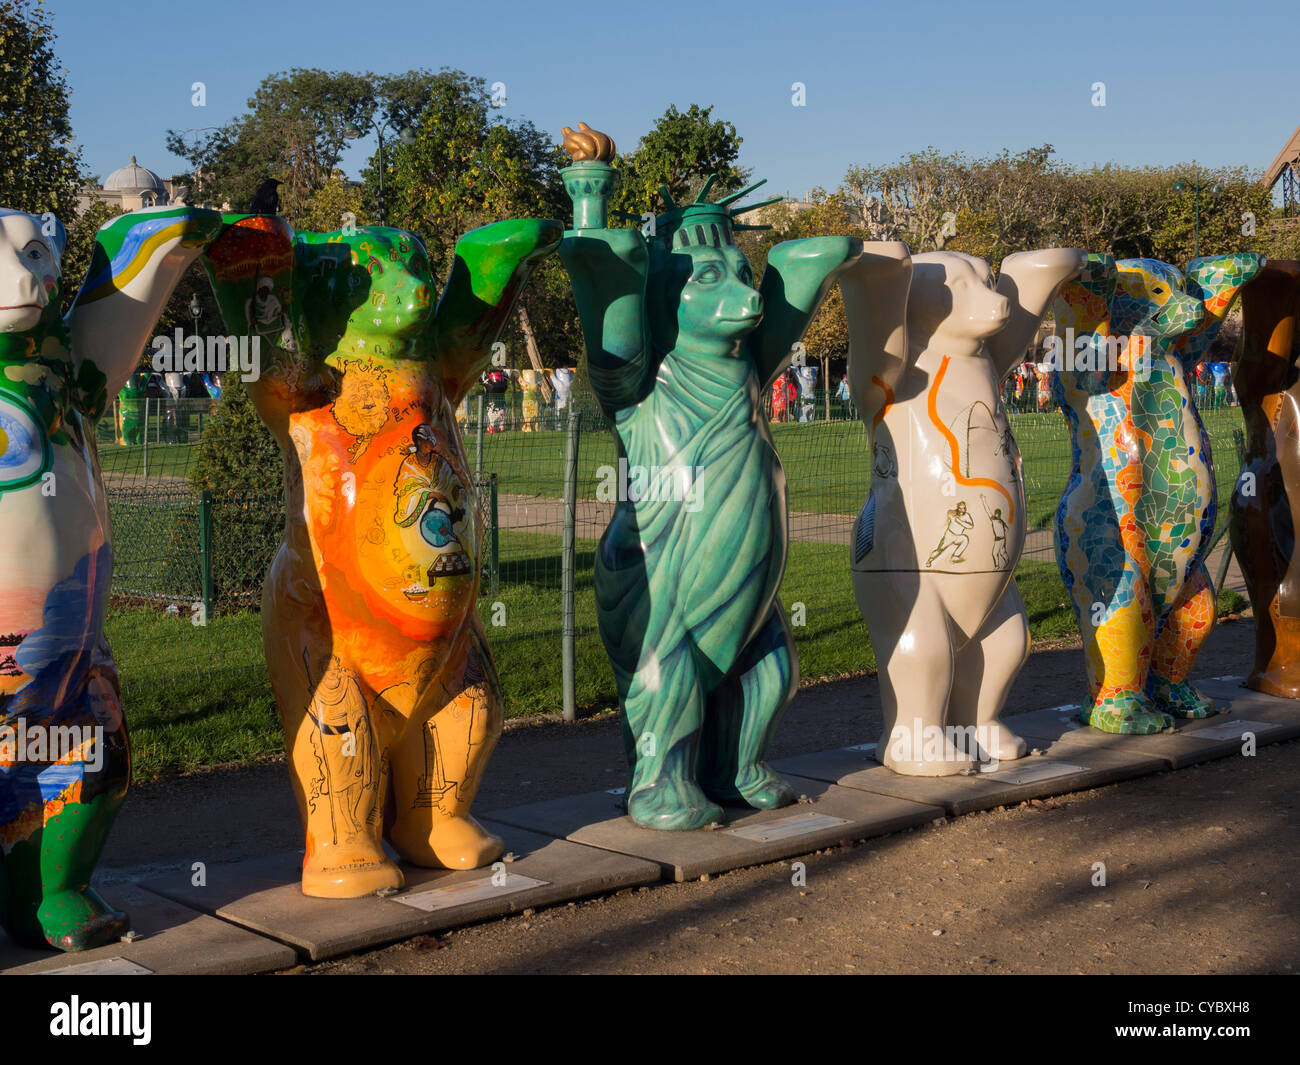 United Buddy Bears in Paris on their global tour. - Stock Image